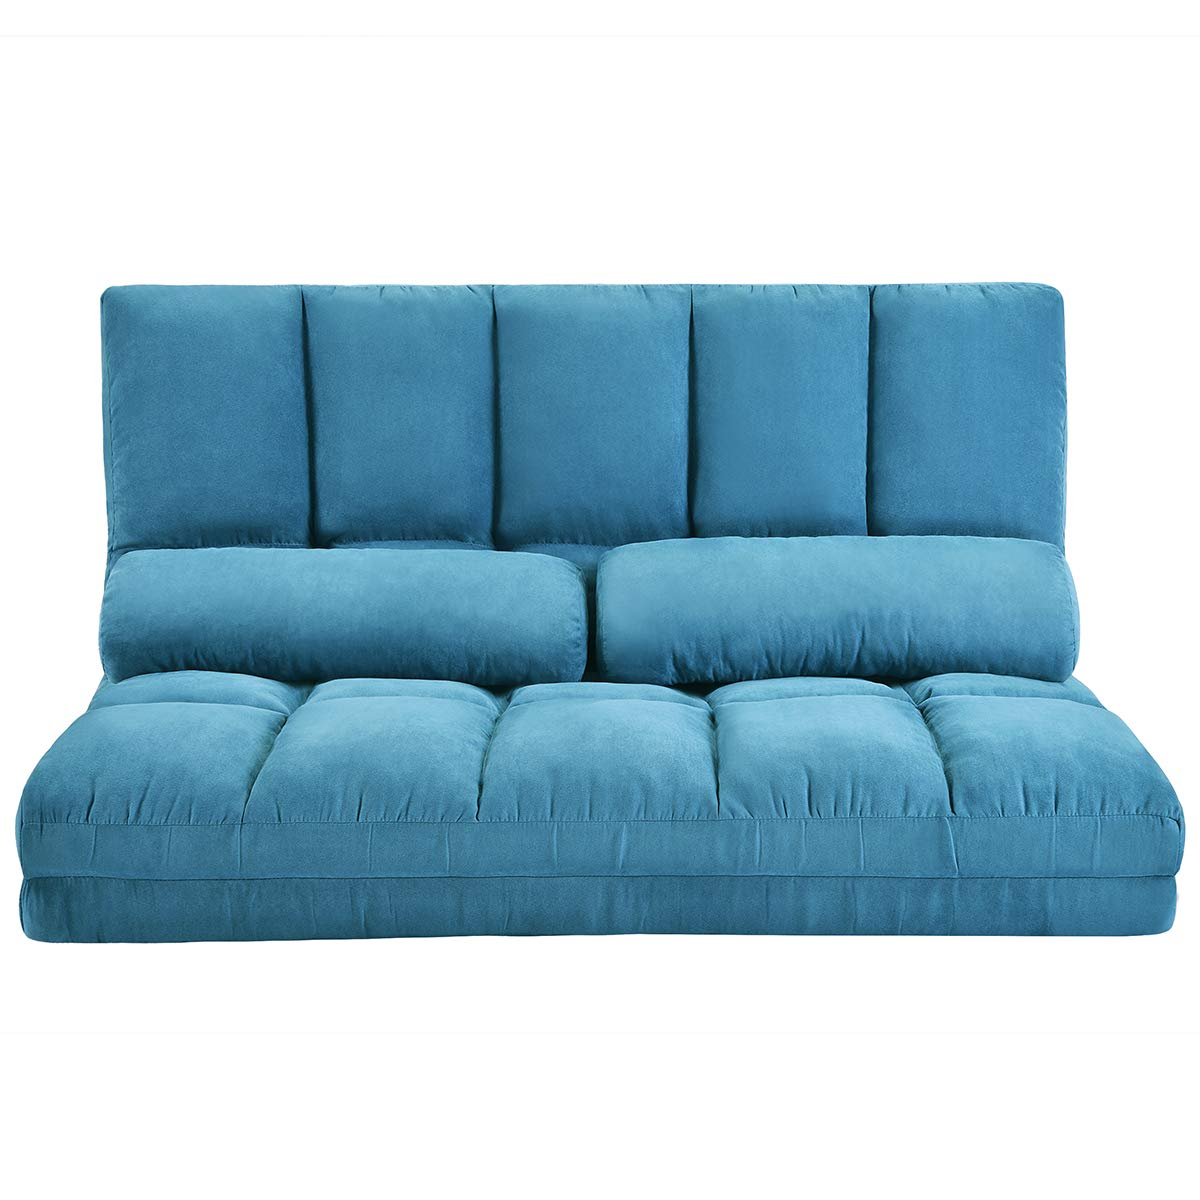 Adjustable Floor Couch and Sofa for Living Room and Bedroom, Foldable 5 Reclining Position with 2 Pillows, Love seat, Blue by Harper & Bright Designs